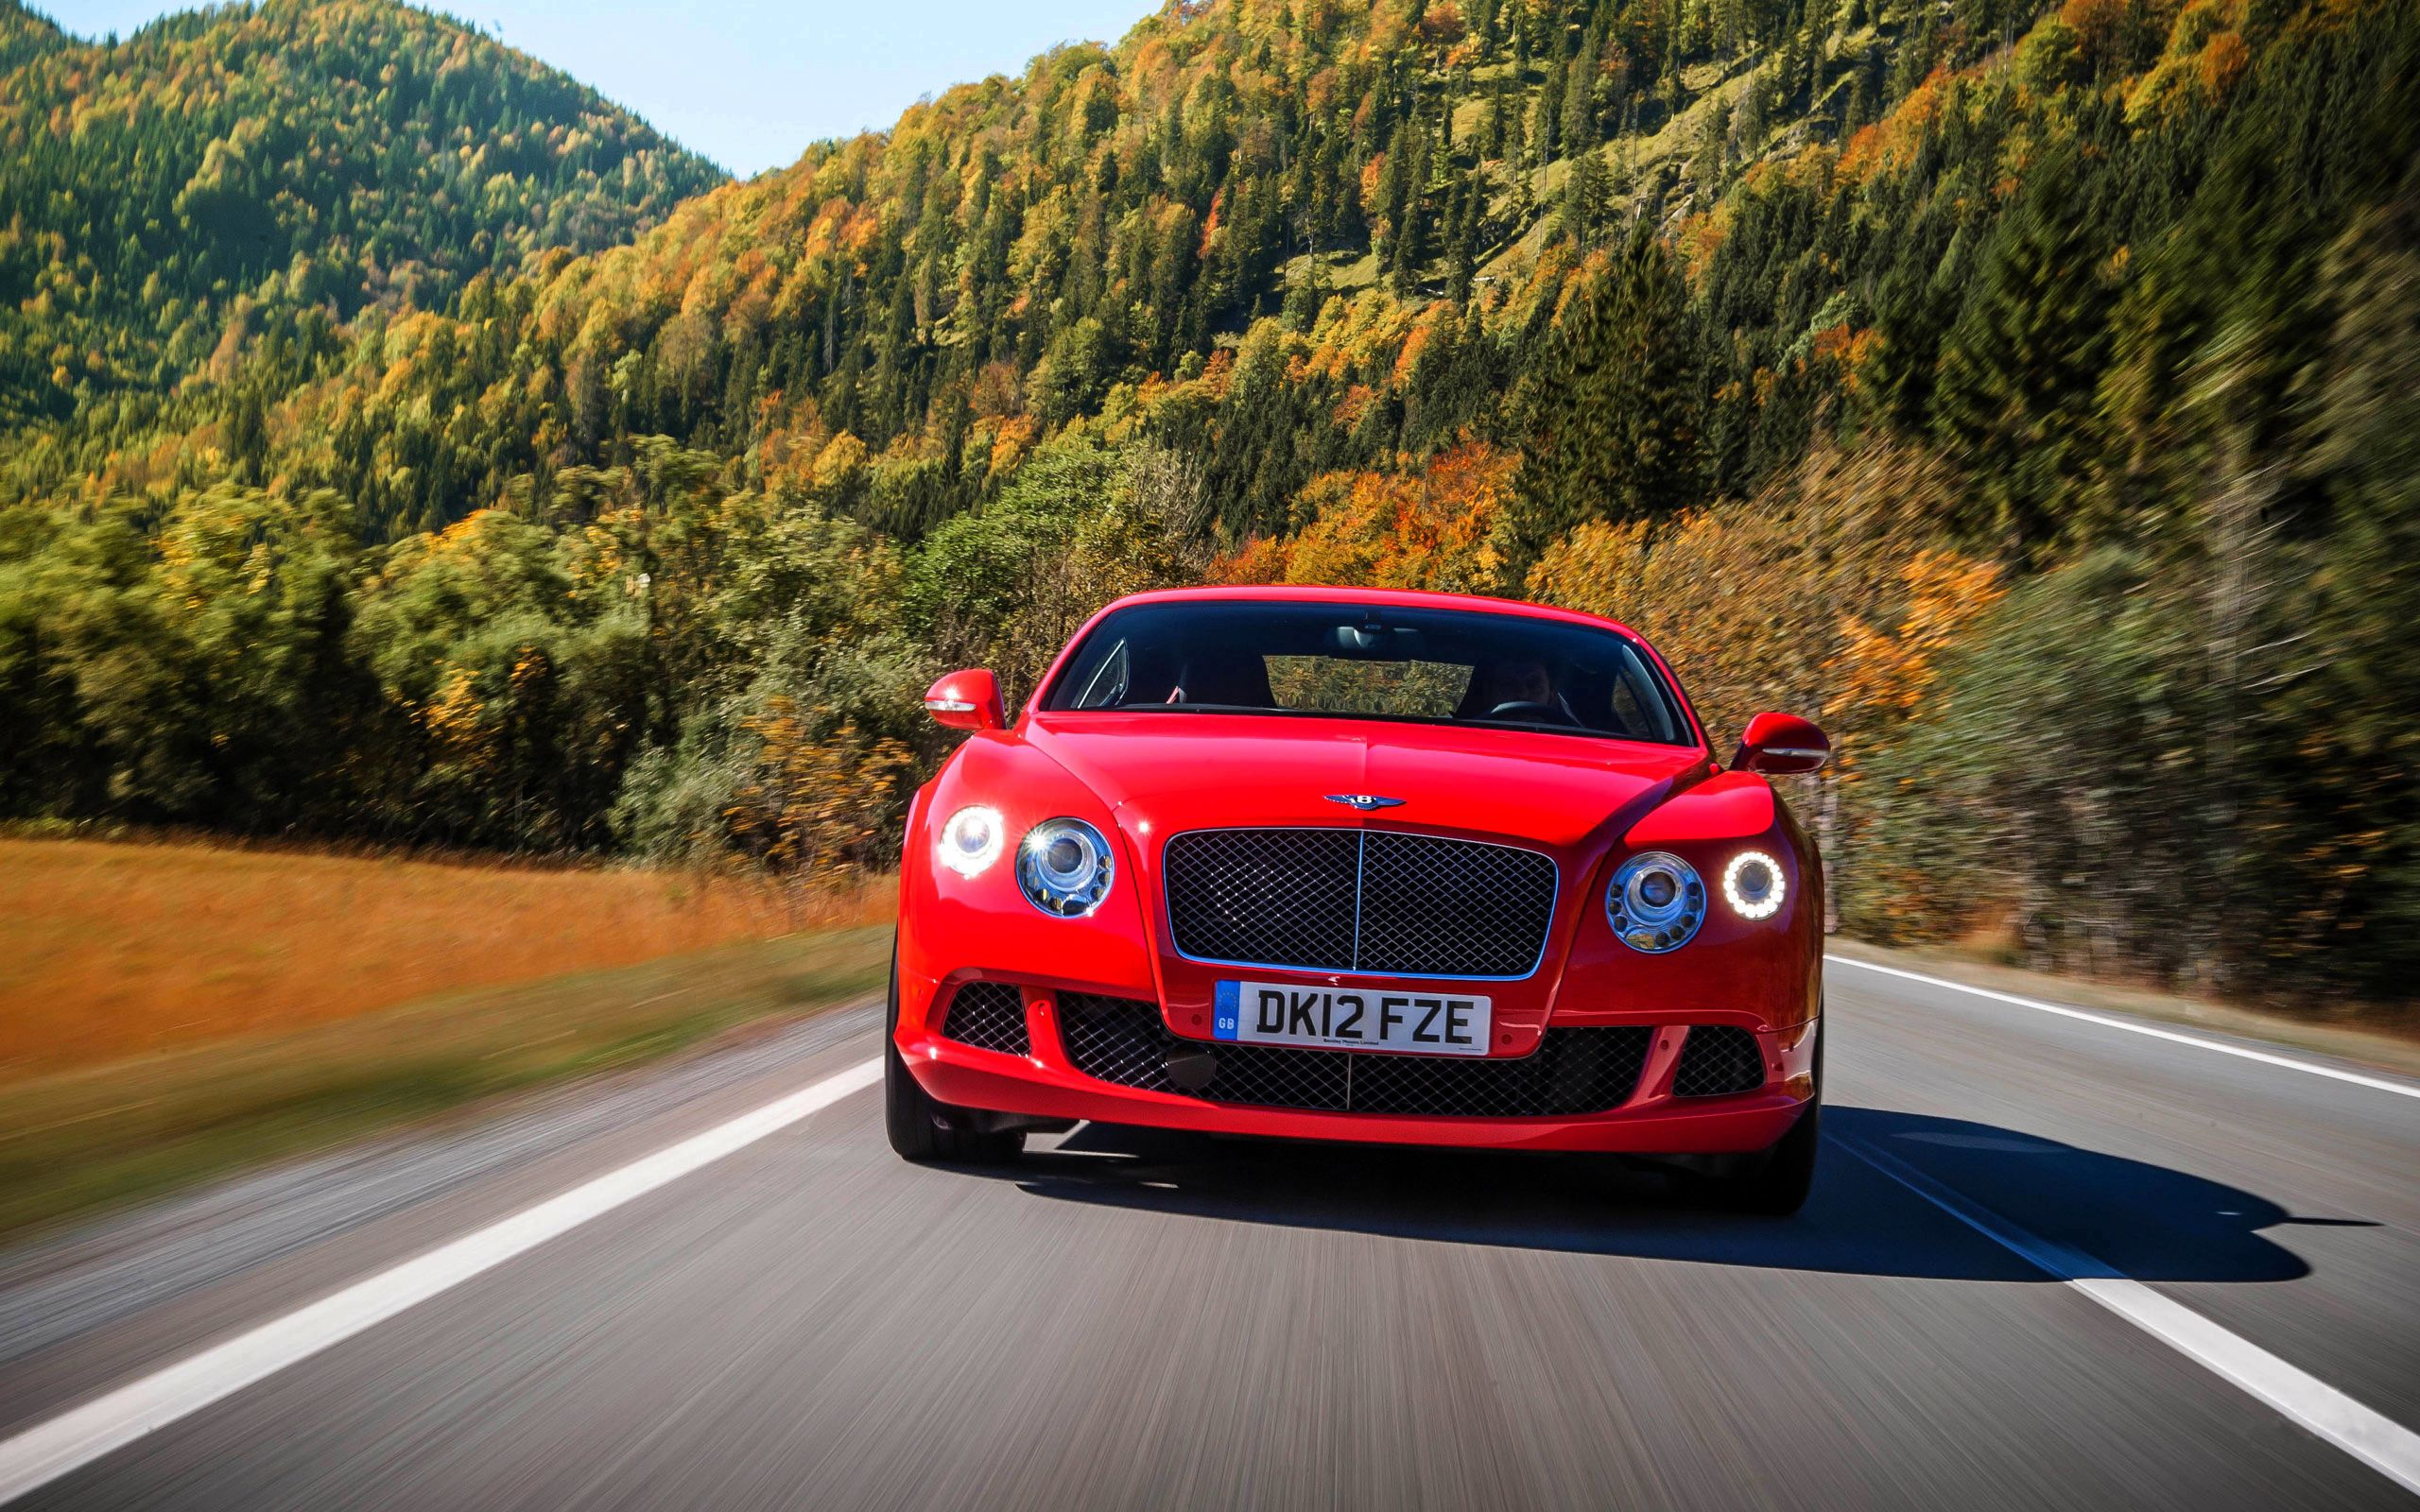 117784 download wallpaper Cars, Bentley, Continental, Gt, Front View, Traffic, Movement, Speed, Road screensavers and pictures for free